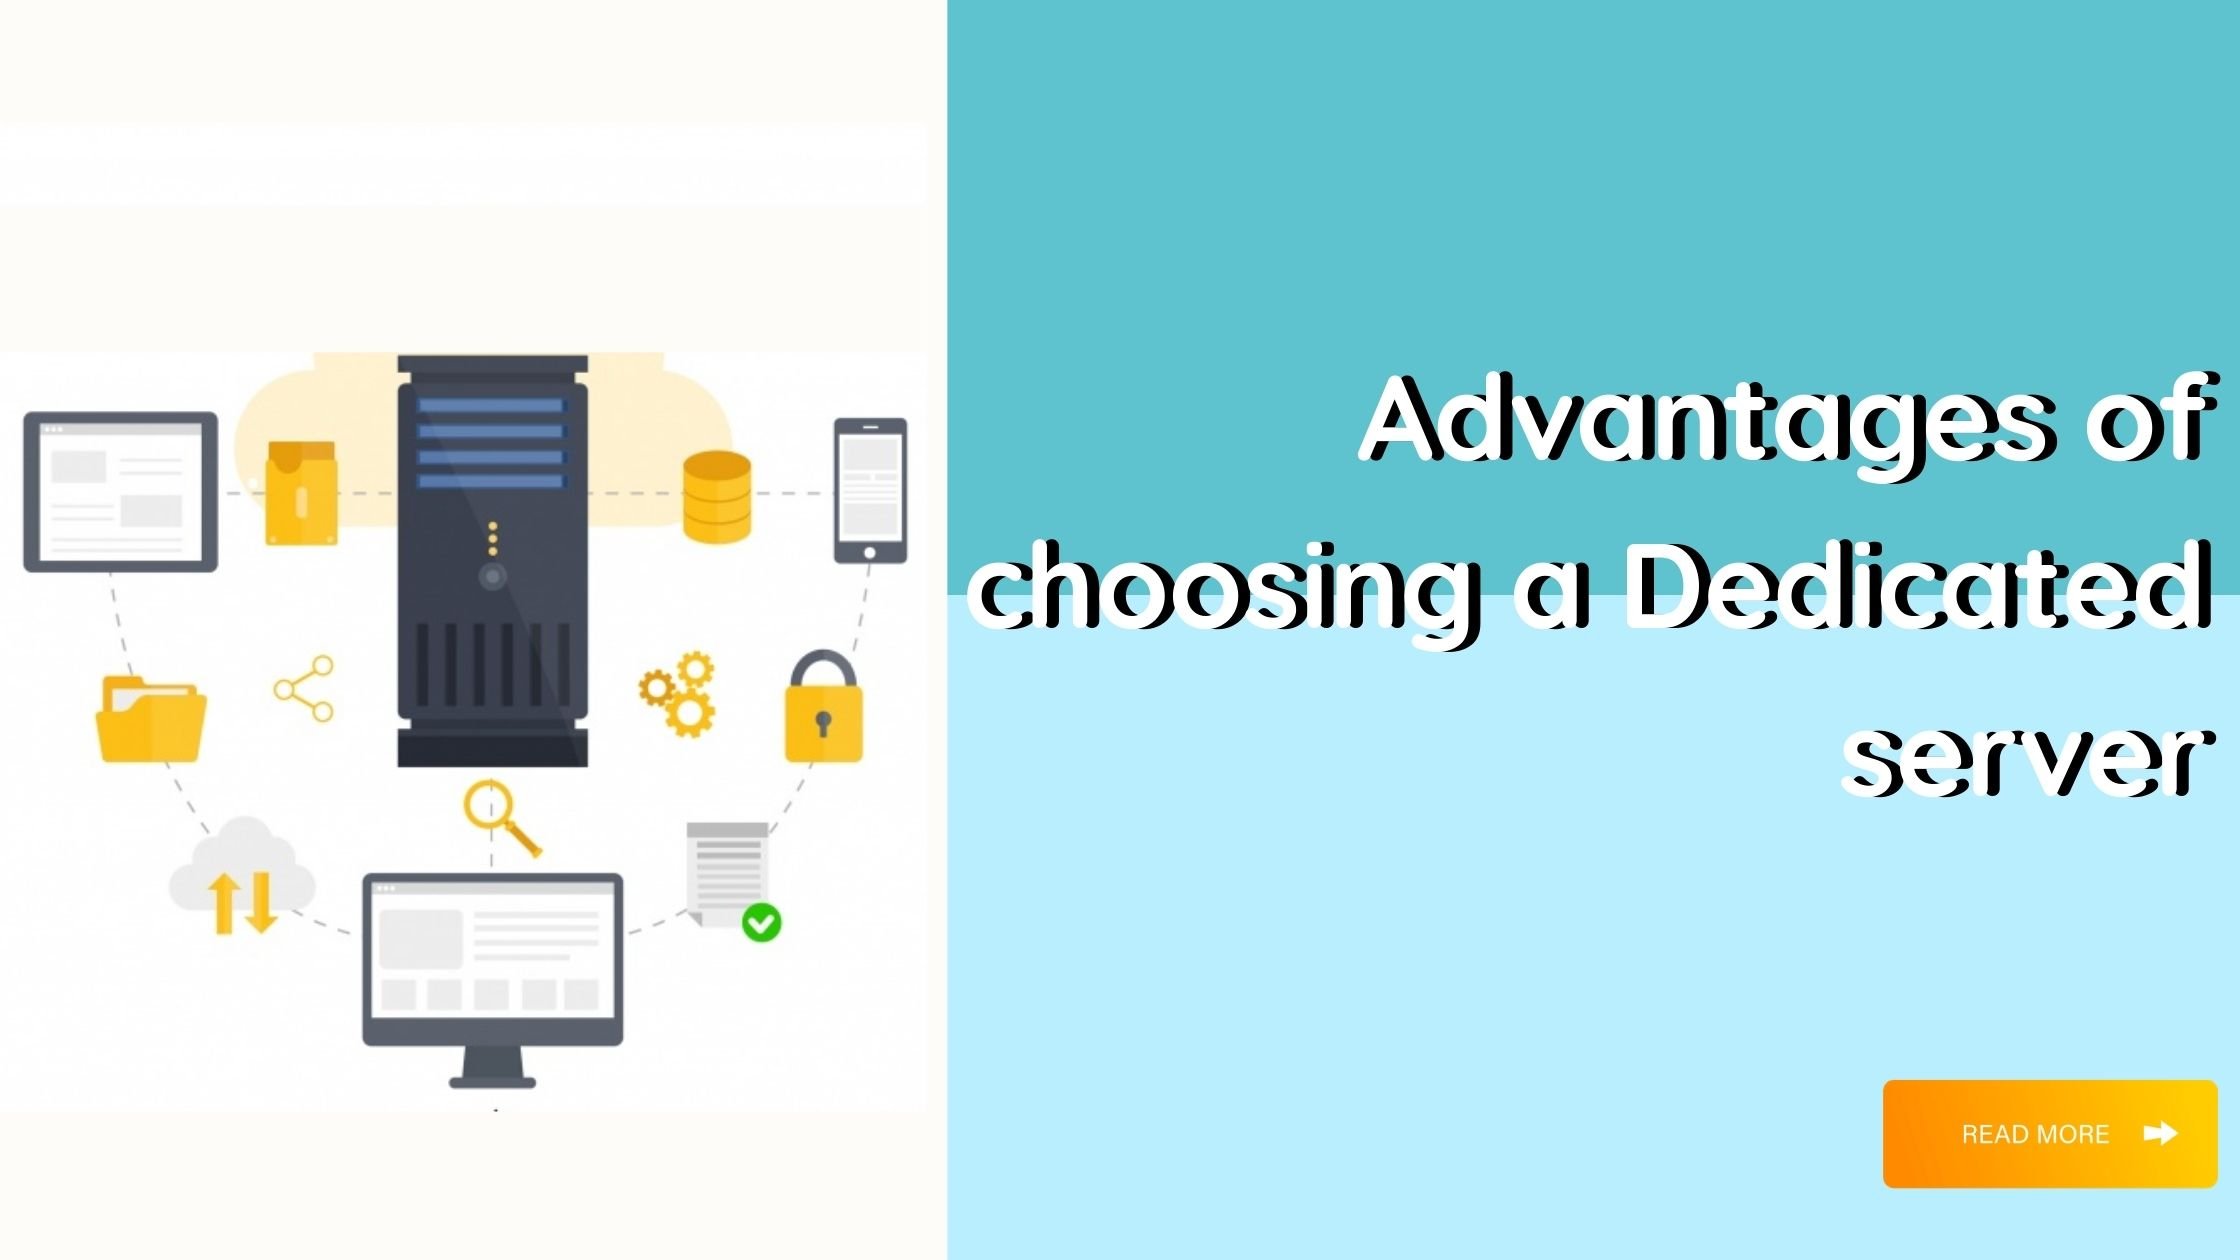 Dedicated server advantages